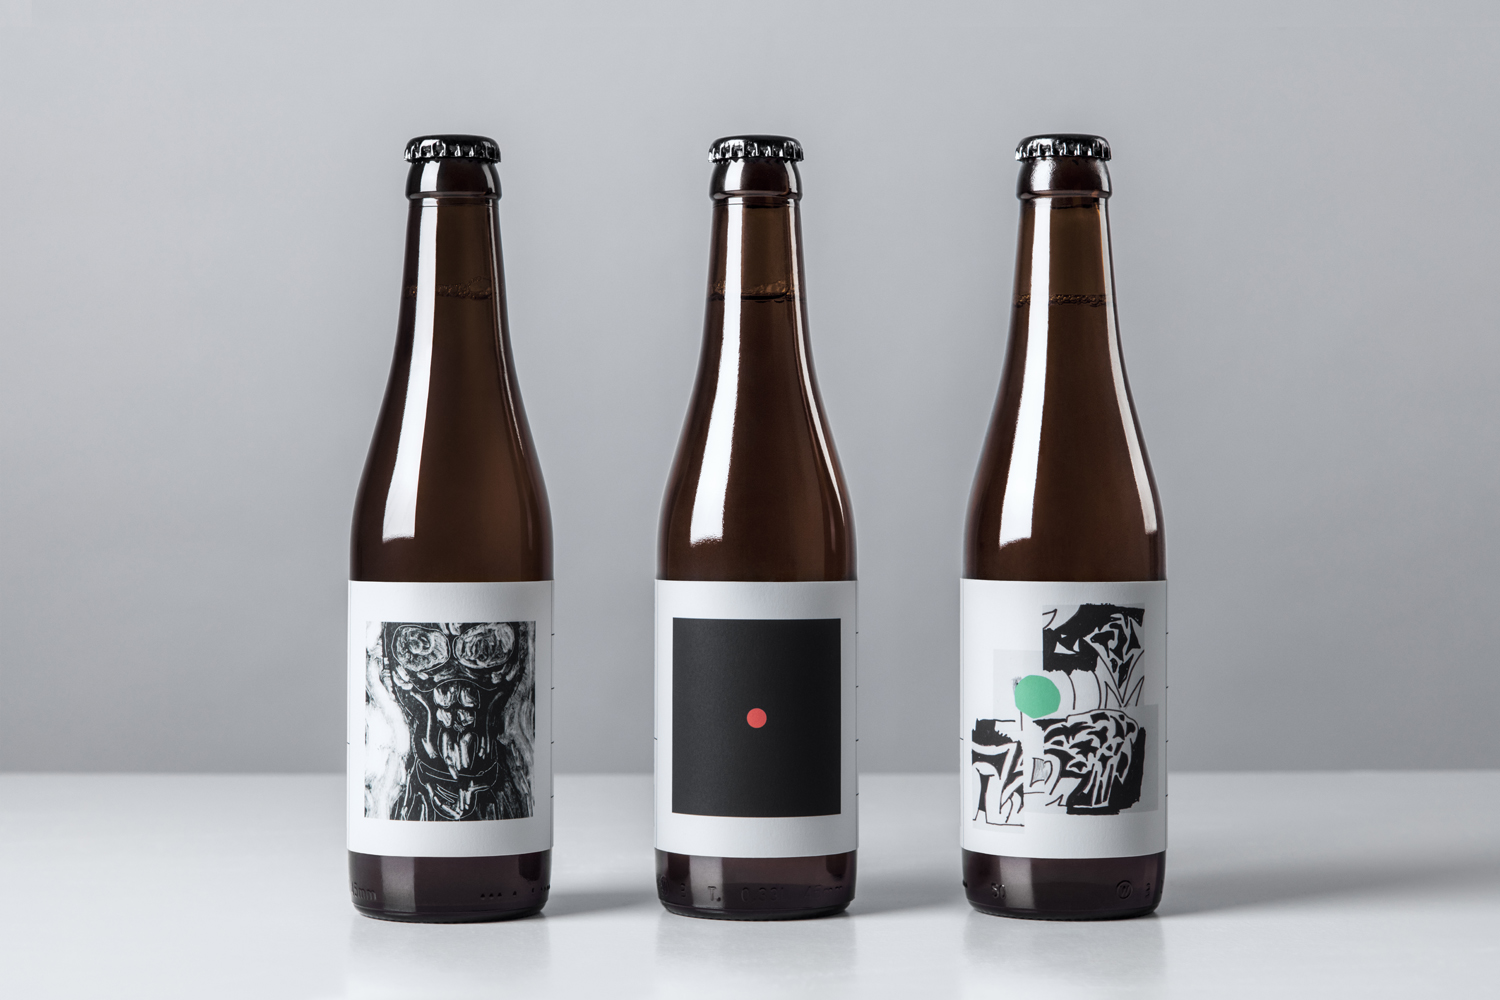 Packaging for O/O Brewing by Swedish graphic design studio Lundgren+Lindqvist